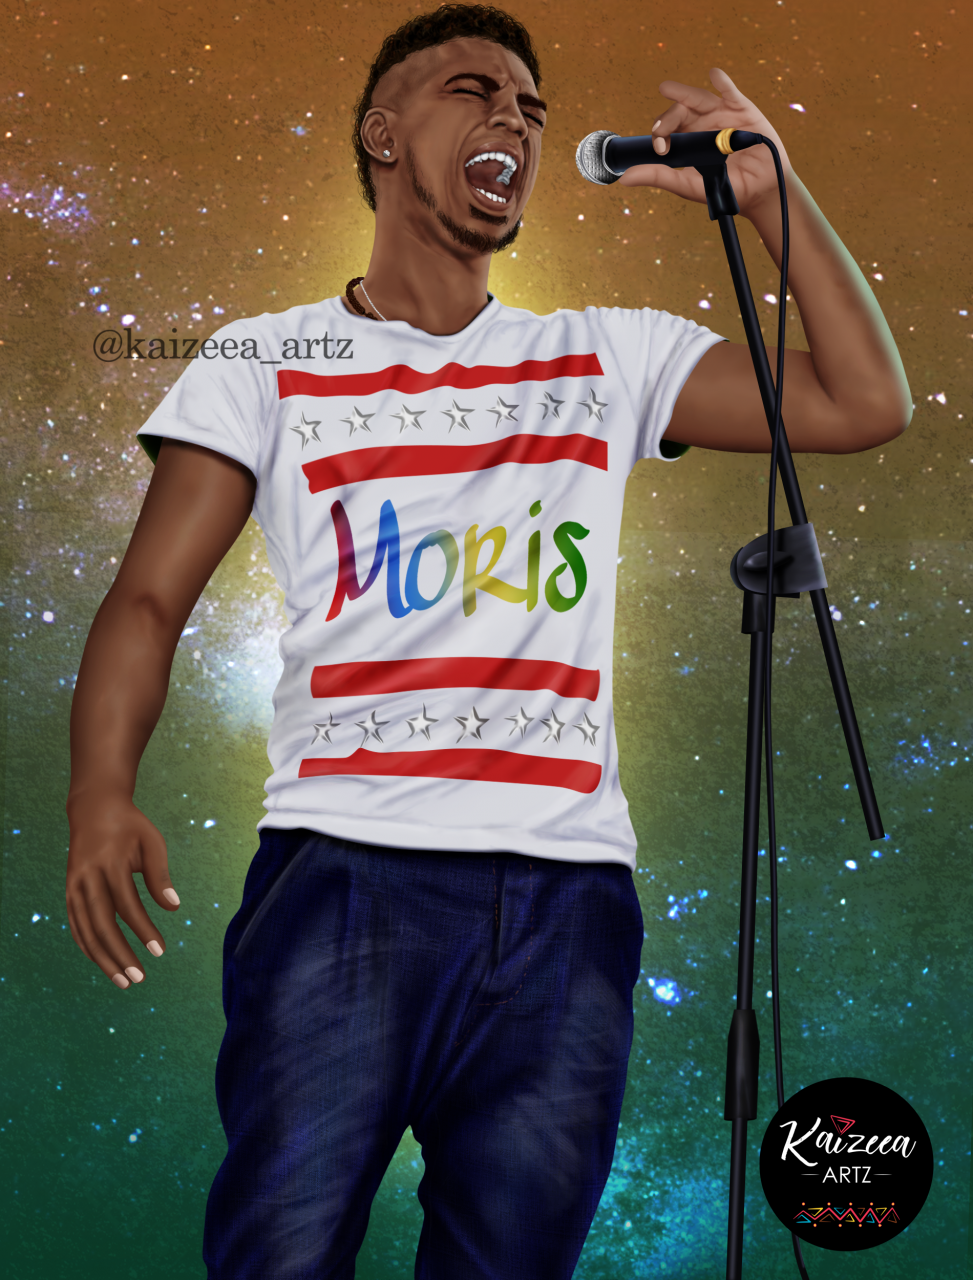 kaizeea artz digital artist mauritius mauritian artist artiste mauricienne moris ile ,aurice mauritius island singer visual art chanteur dessin art numerique art digital digital art colorful art african art best mauritian artist rouge bleu jaune vert instagram facebook top artist meilleure artiste digital painting realistic art